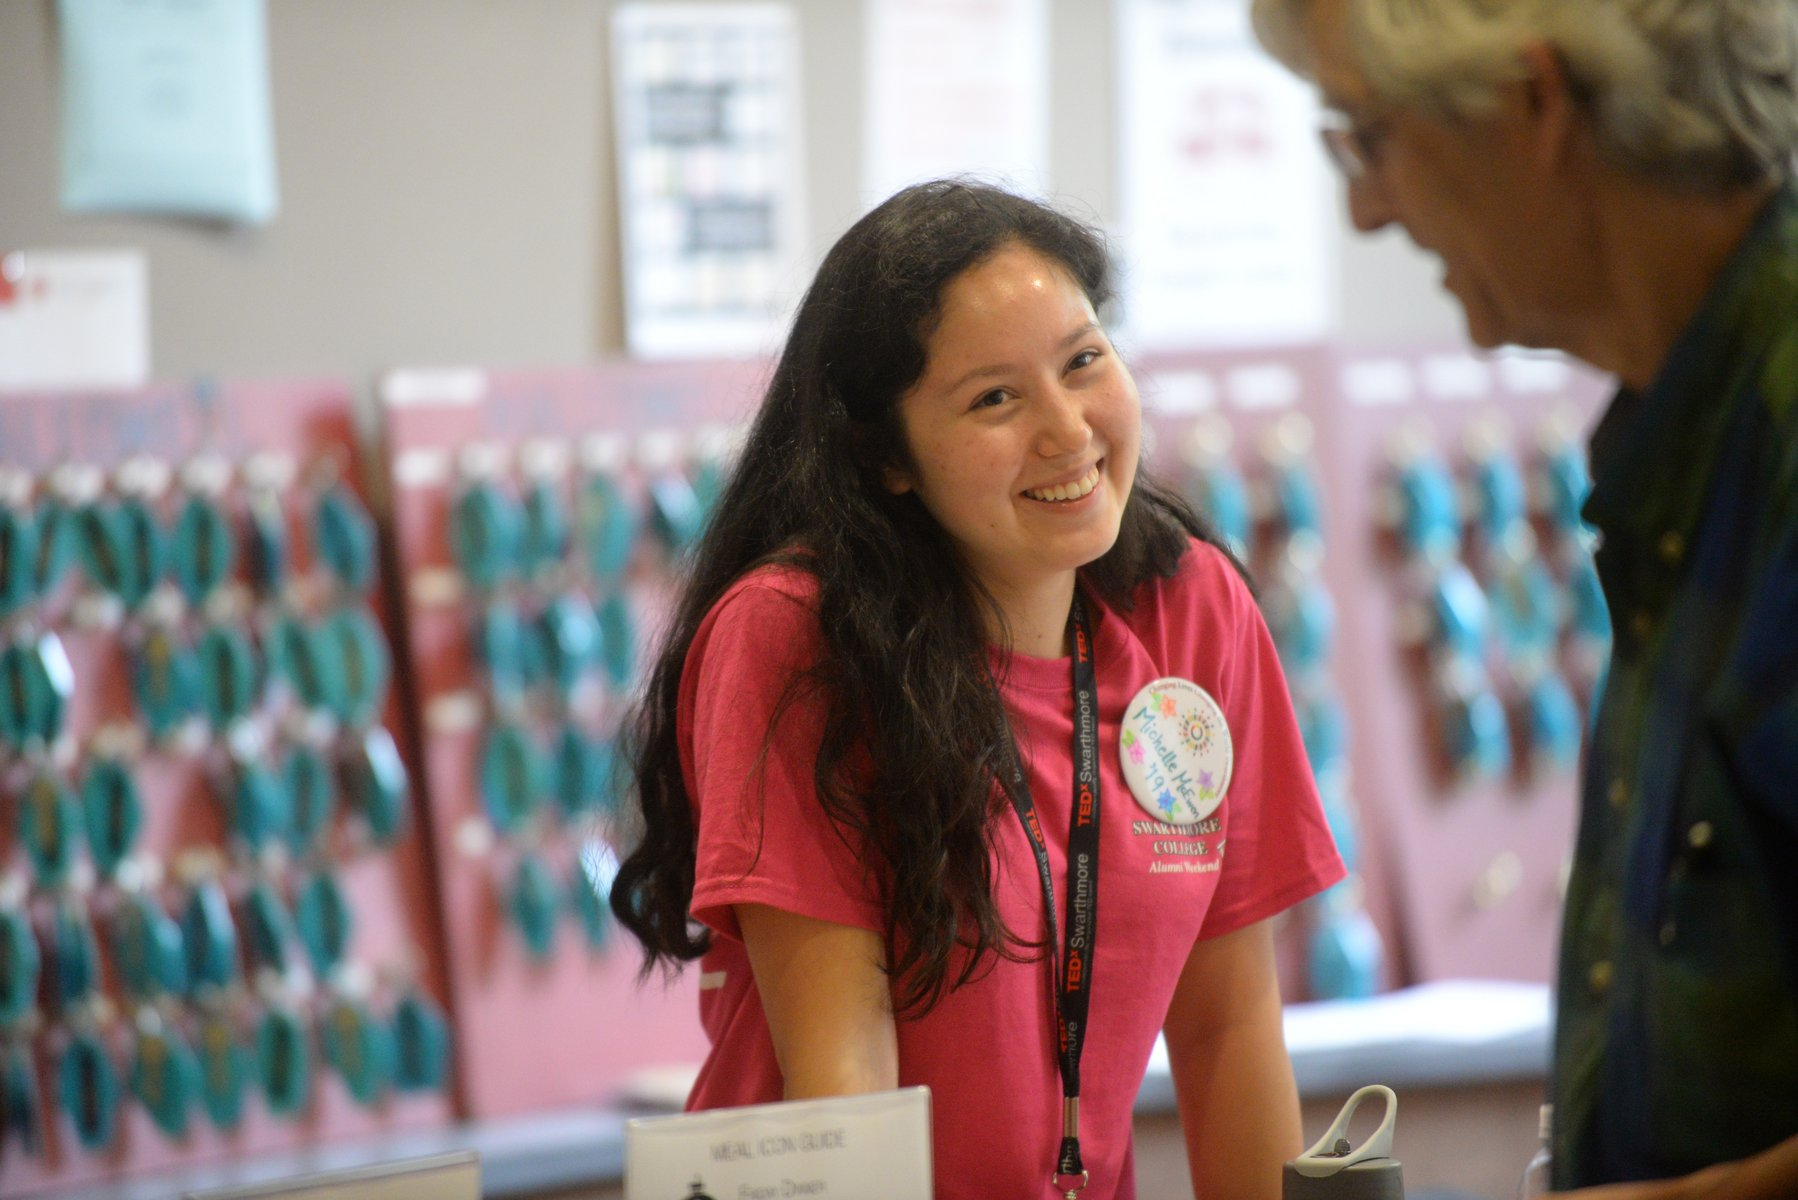 A student worker checks in alumni guests